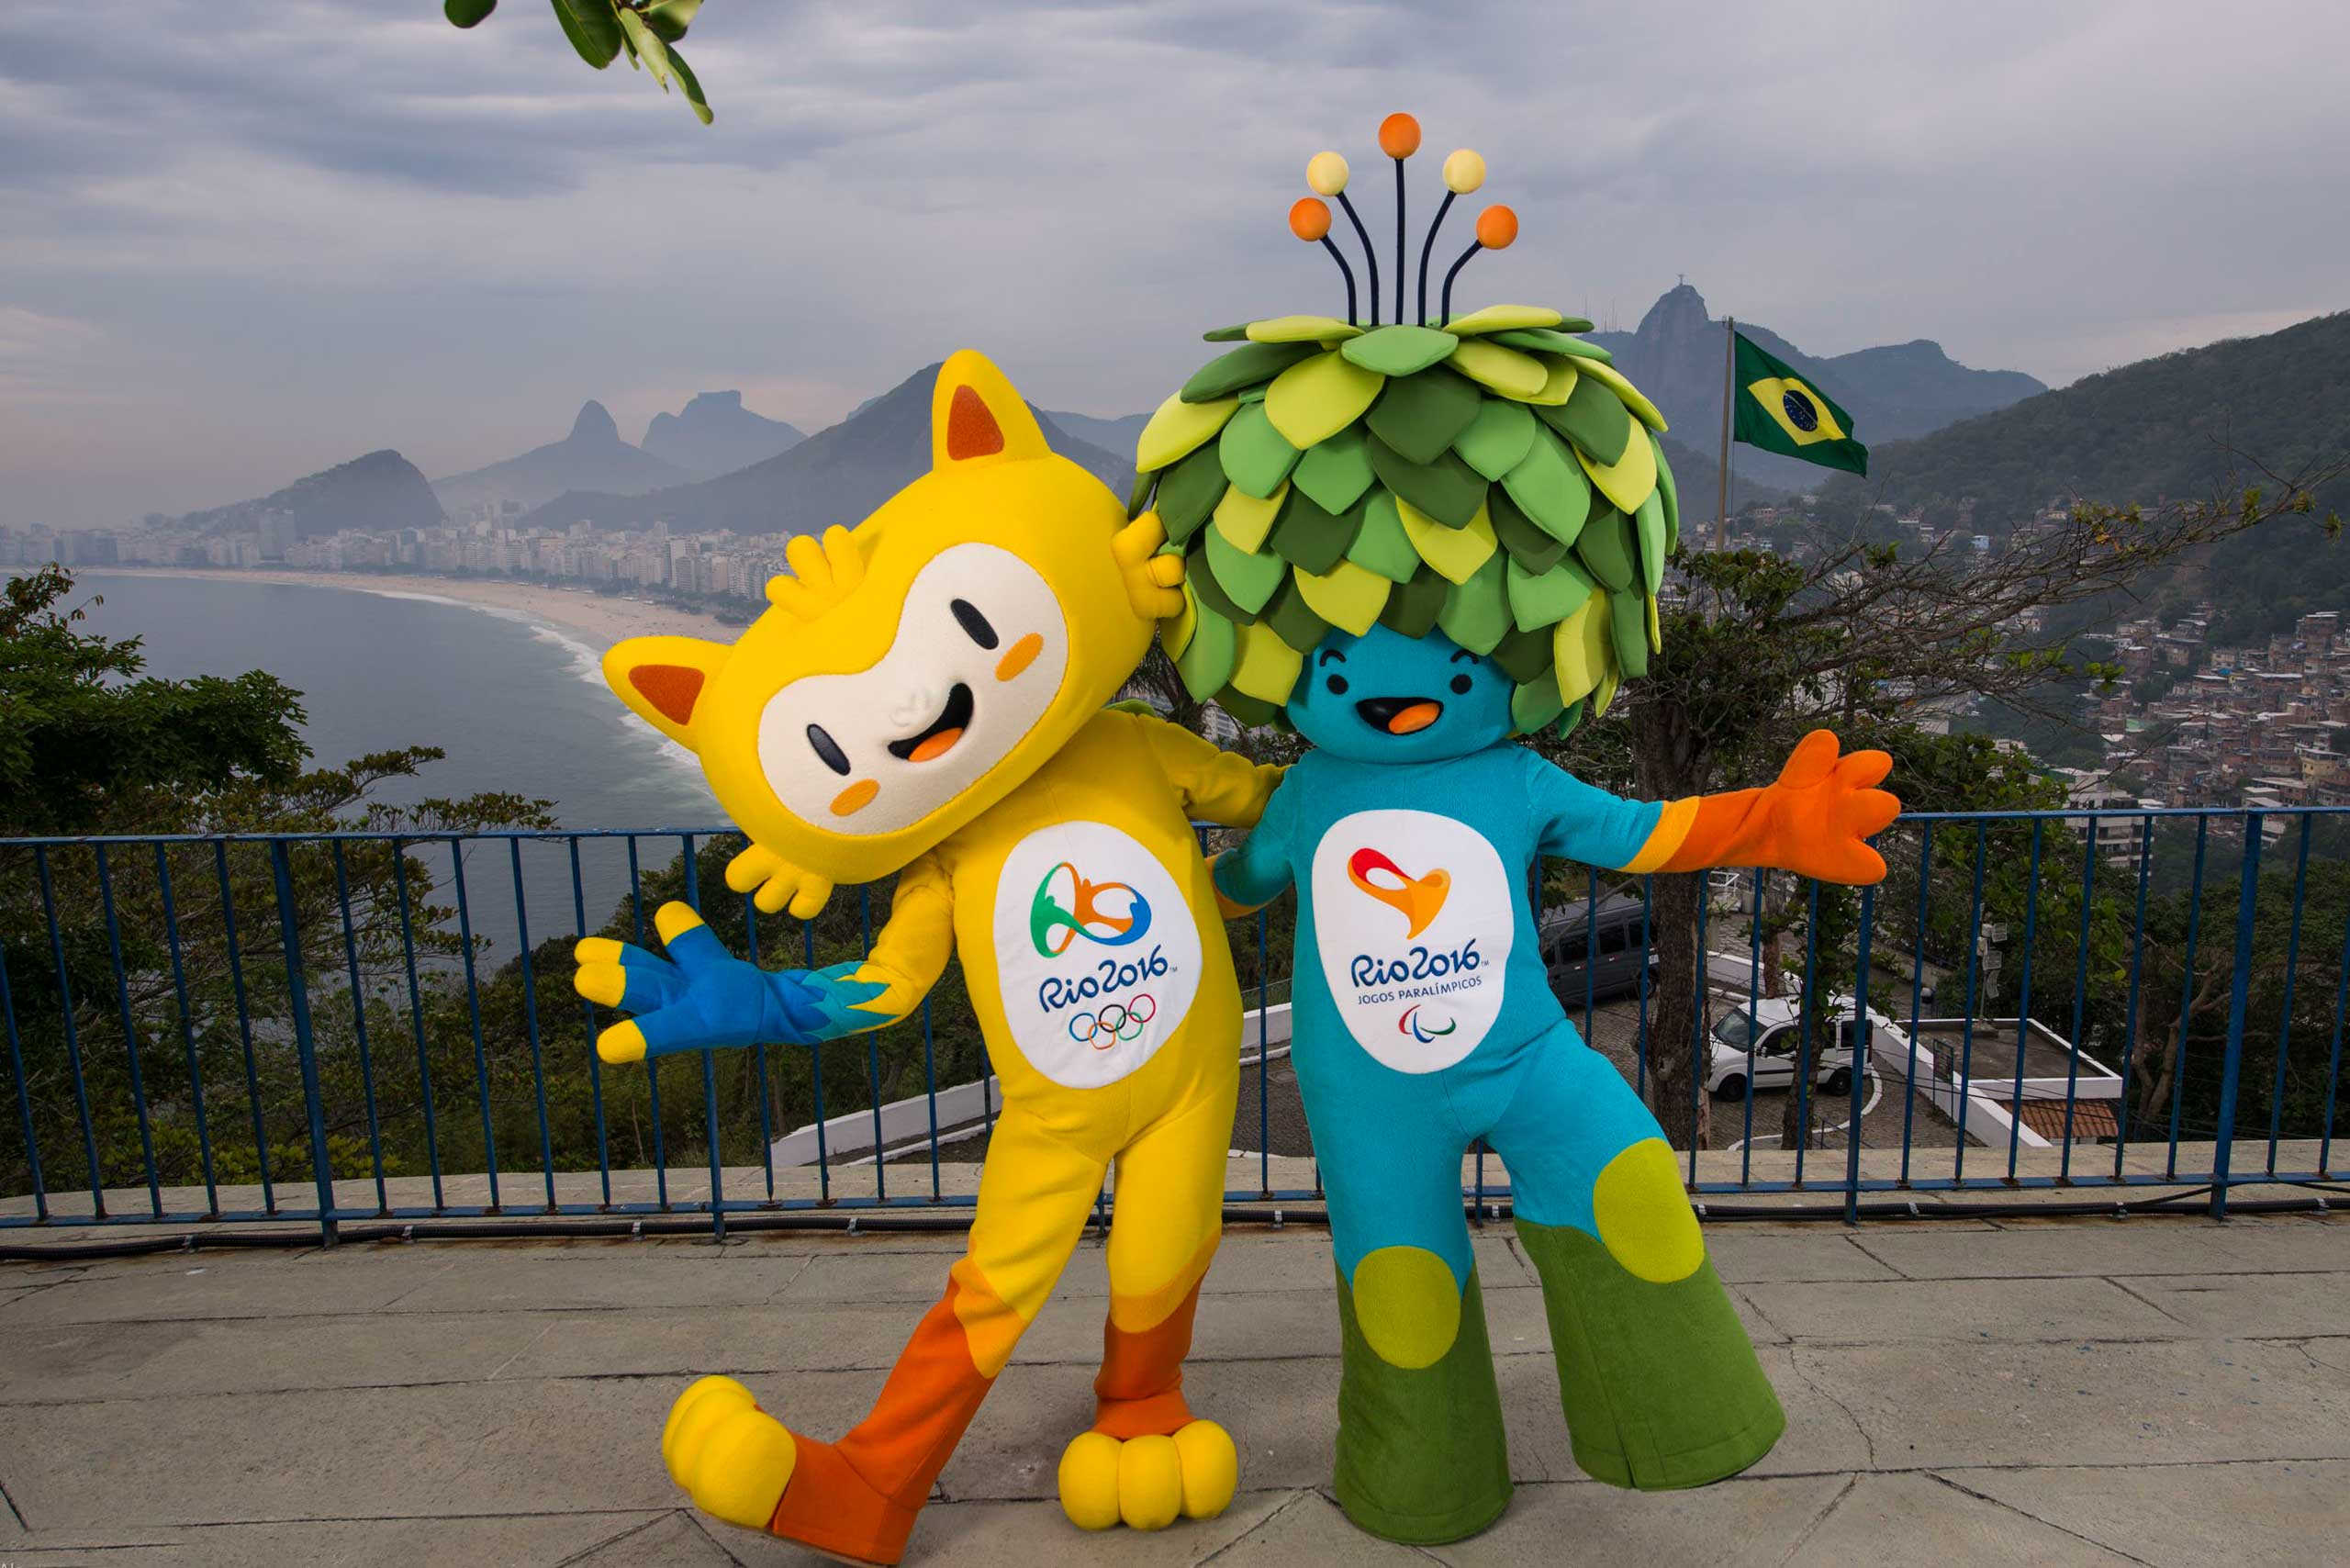 The mascots of the Rio 2016 Olympic and Paralympic Games are pictured in front of the Copacabana beach during their first appearance in Rio de Janeiro, Nov.23, 2014.